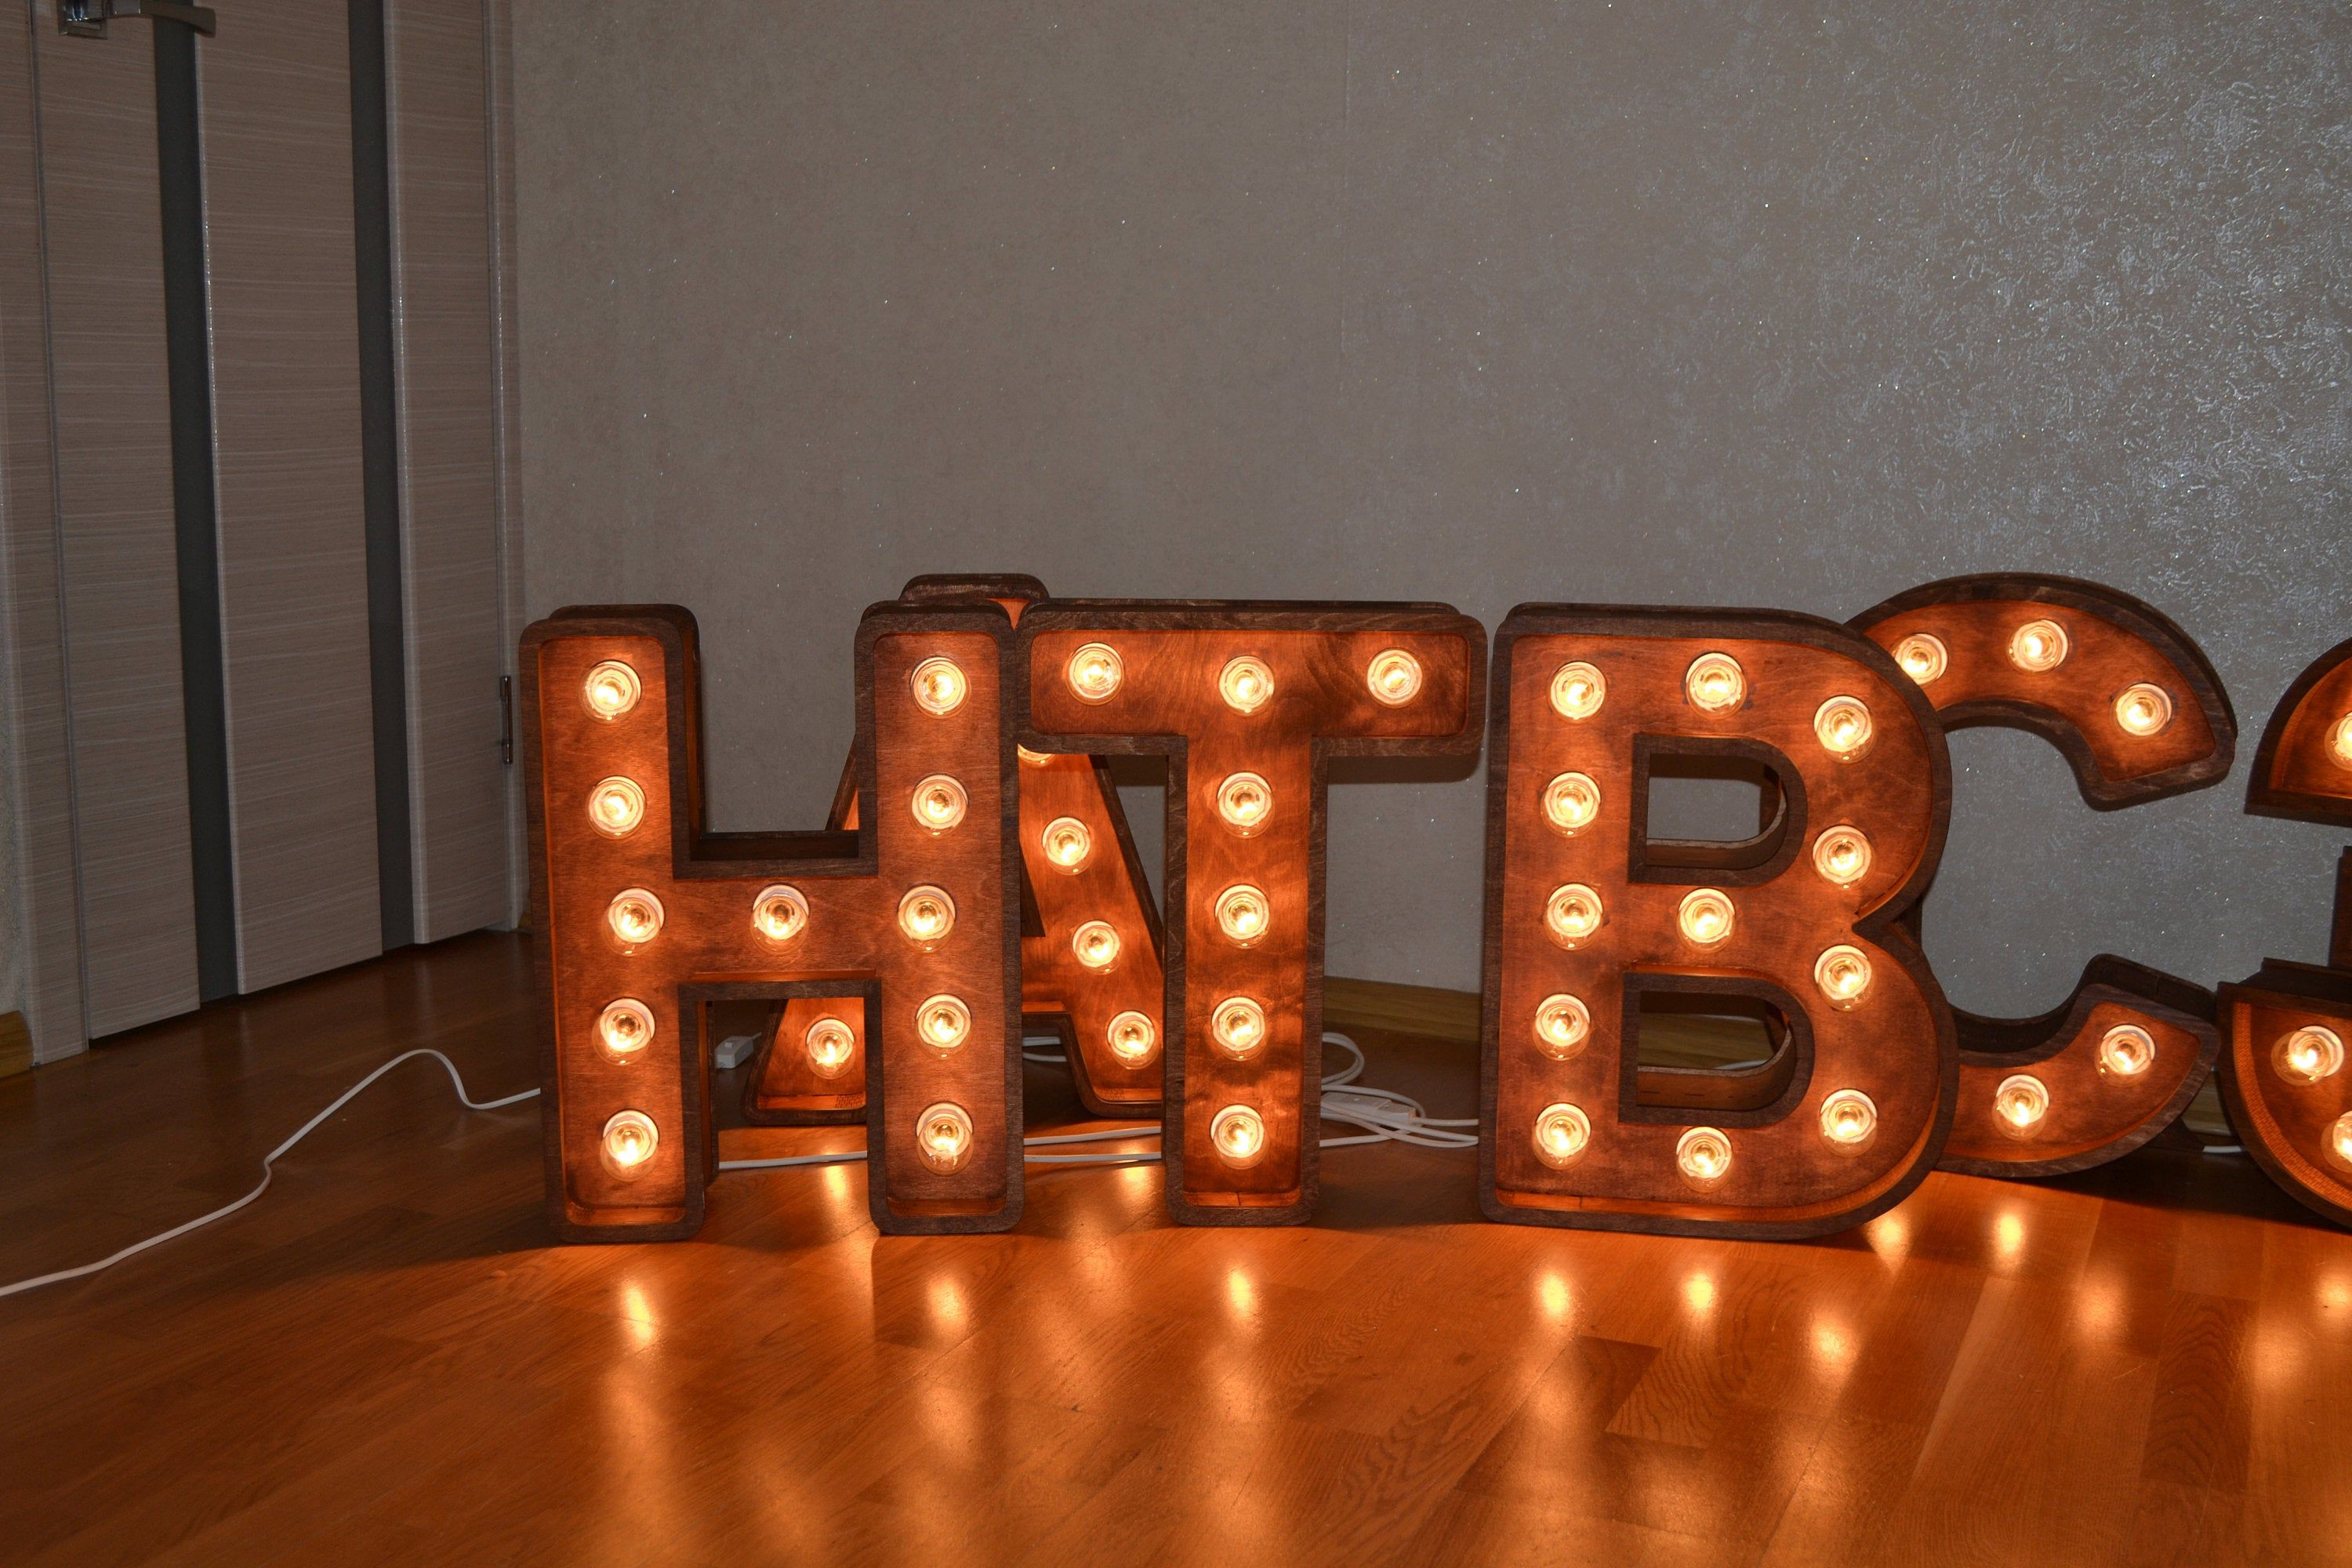 20 Lighted Marquee Letters Large Wood Letters Marquee Lights Industrial Farmhouse Light Up Letters Wedding Letters Lighted Letters Lighted Marquee Letters Light Letters Light Up Letters